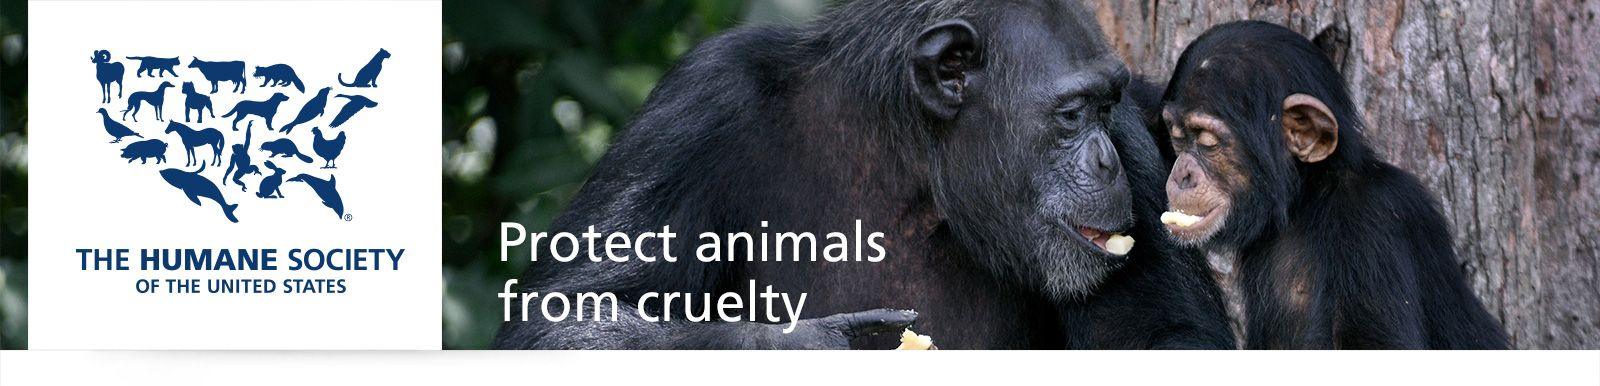 Protect Animals   Give a Gift - The Humane Society of the United States